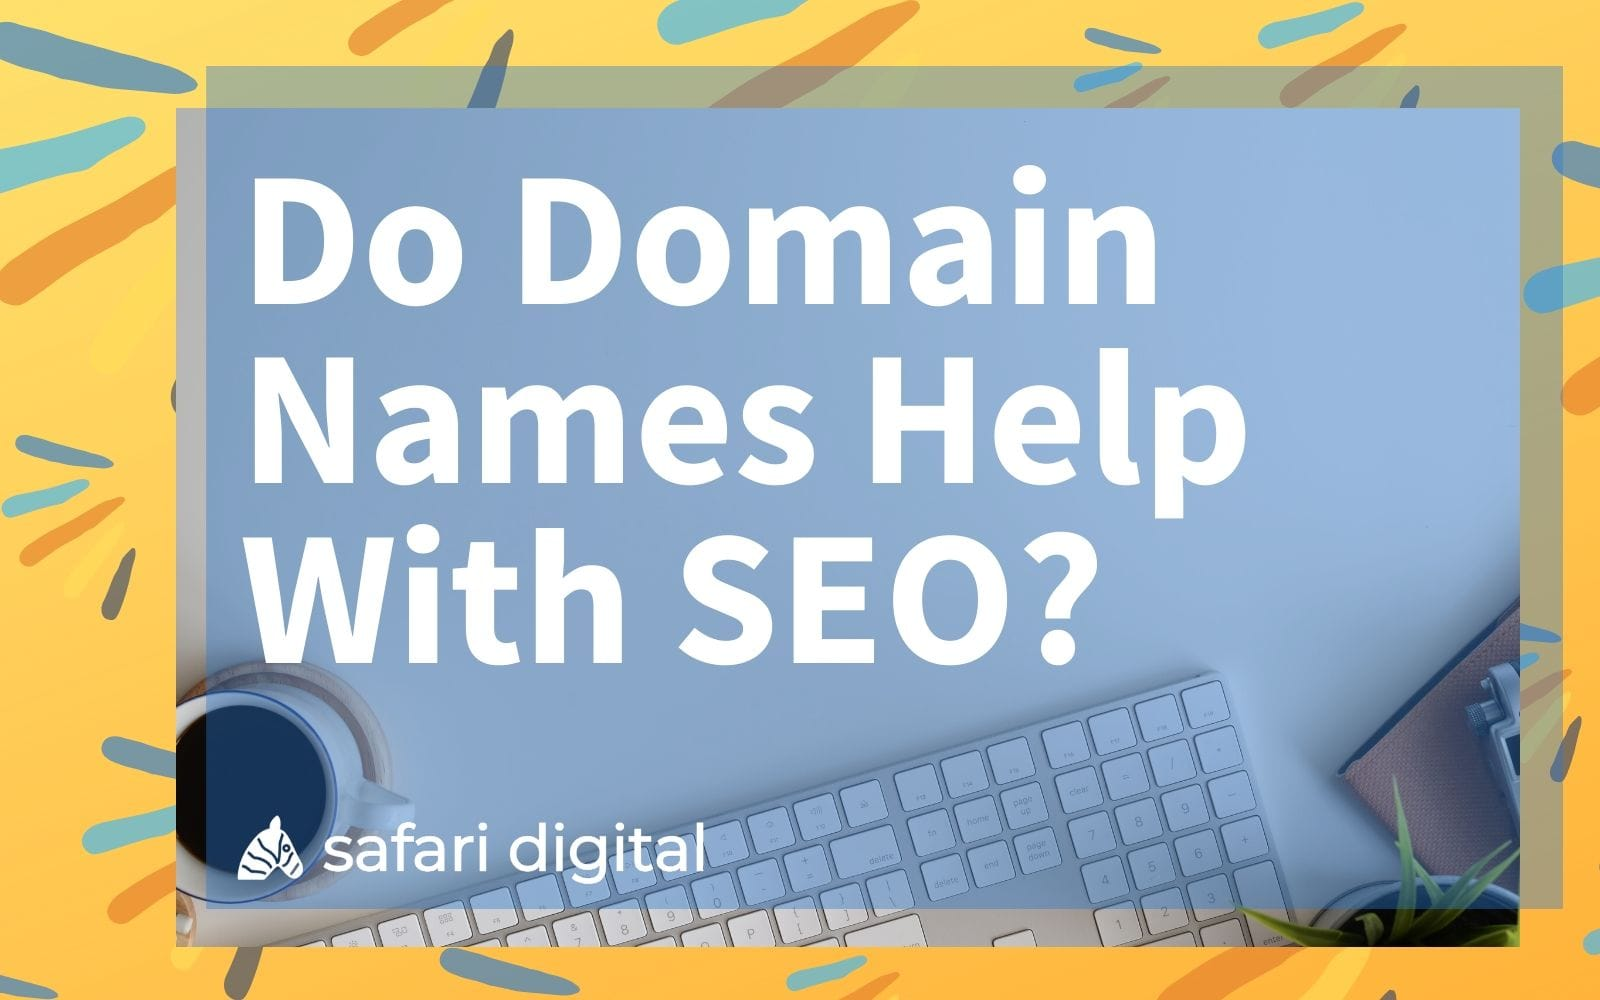 Do Domain Names Help With SEO? cover image